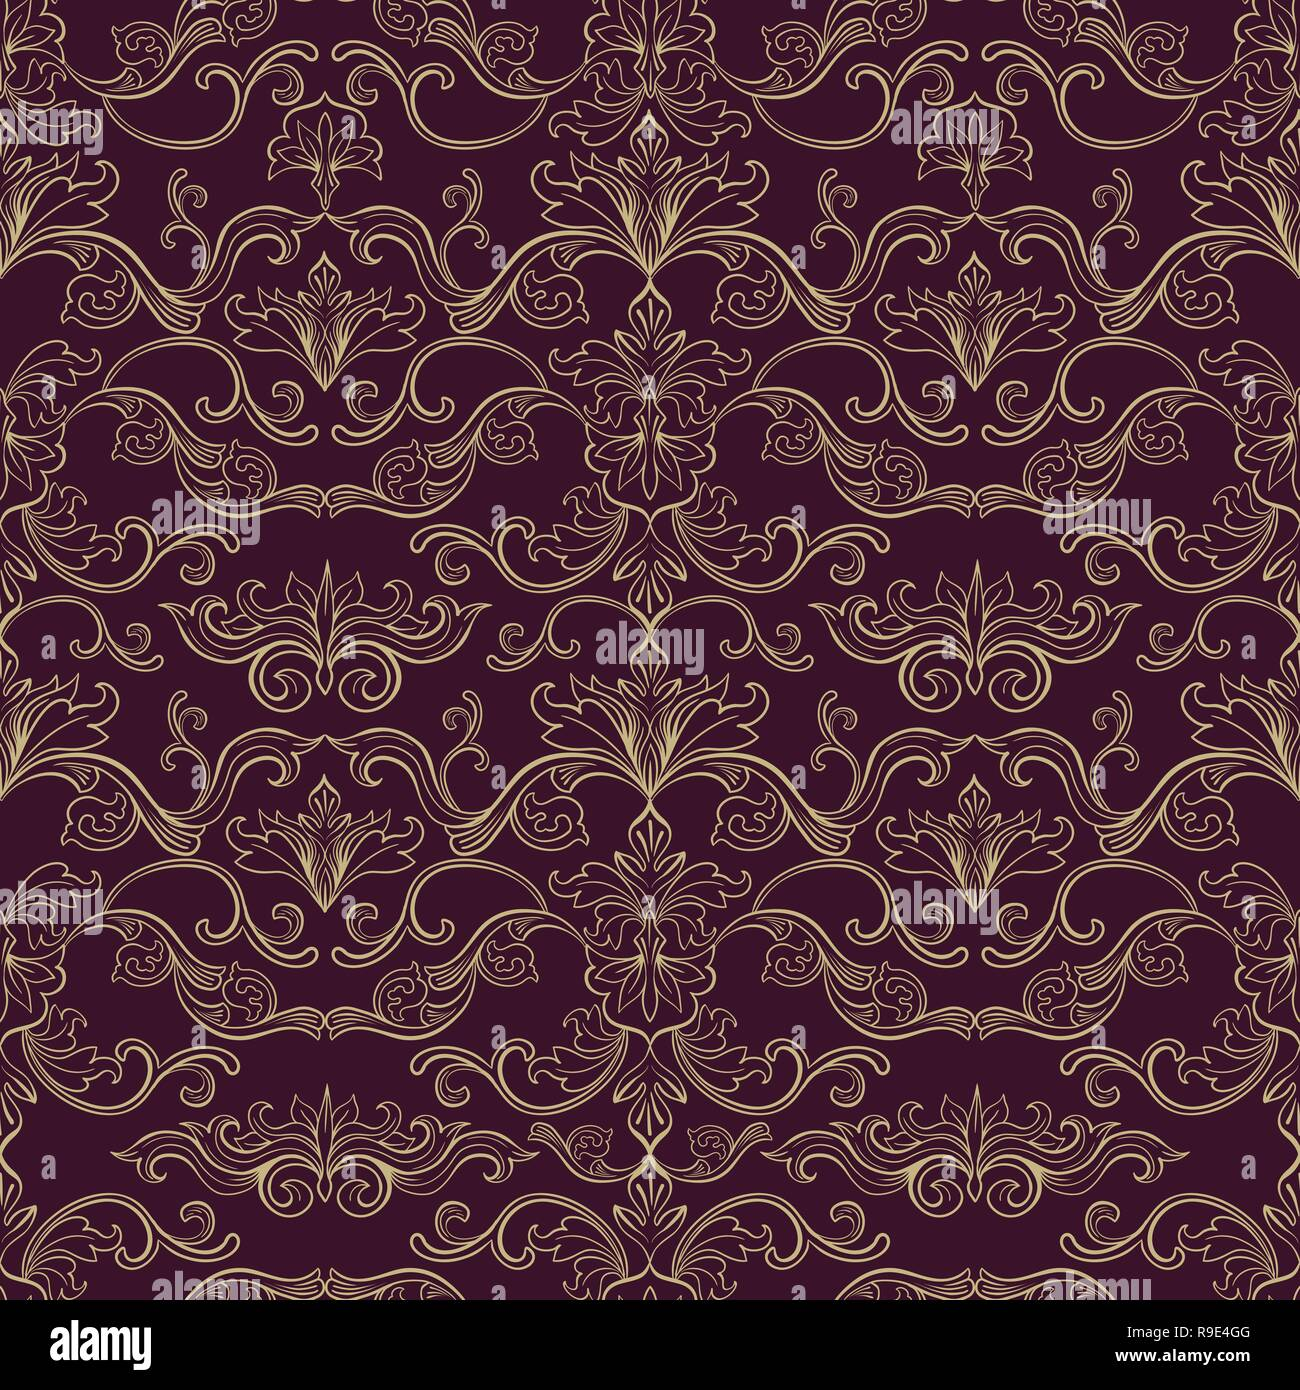 Damask Vector Seamless Pattern Vintage Style Wallpaper Carpet Or Wrapping Paper Design Red Italian Medieval Floral Flourishes Greek Flowers For Textures Baroque Leaves For Scrapbooking Stock Vector Image Art Alamy